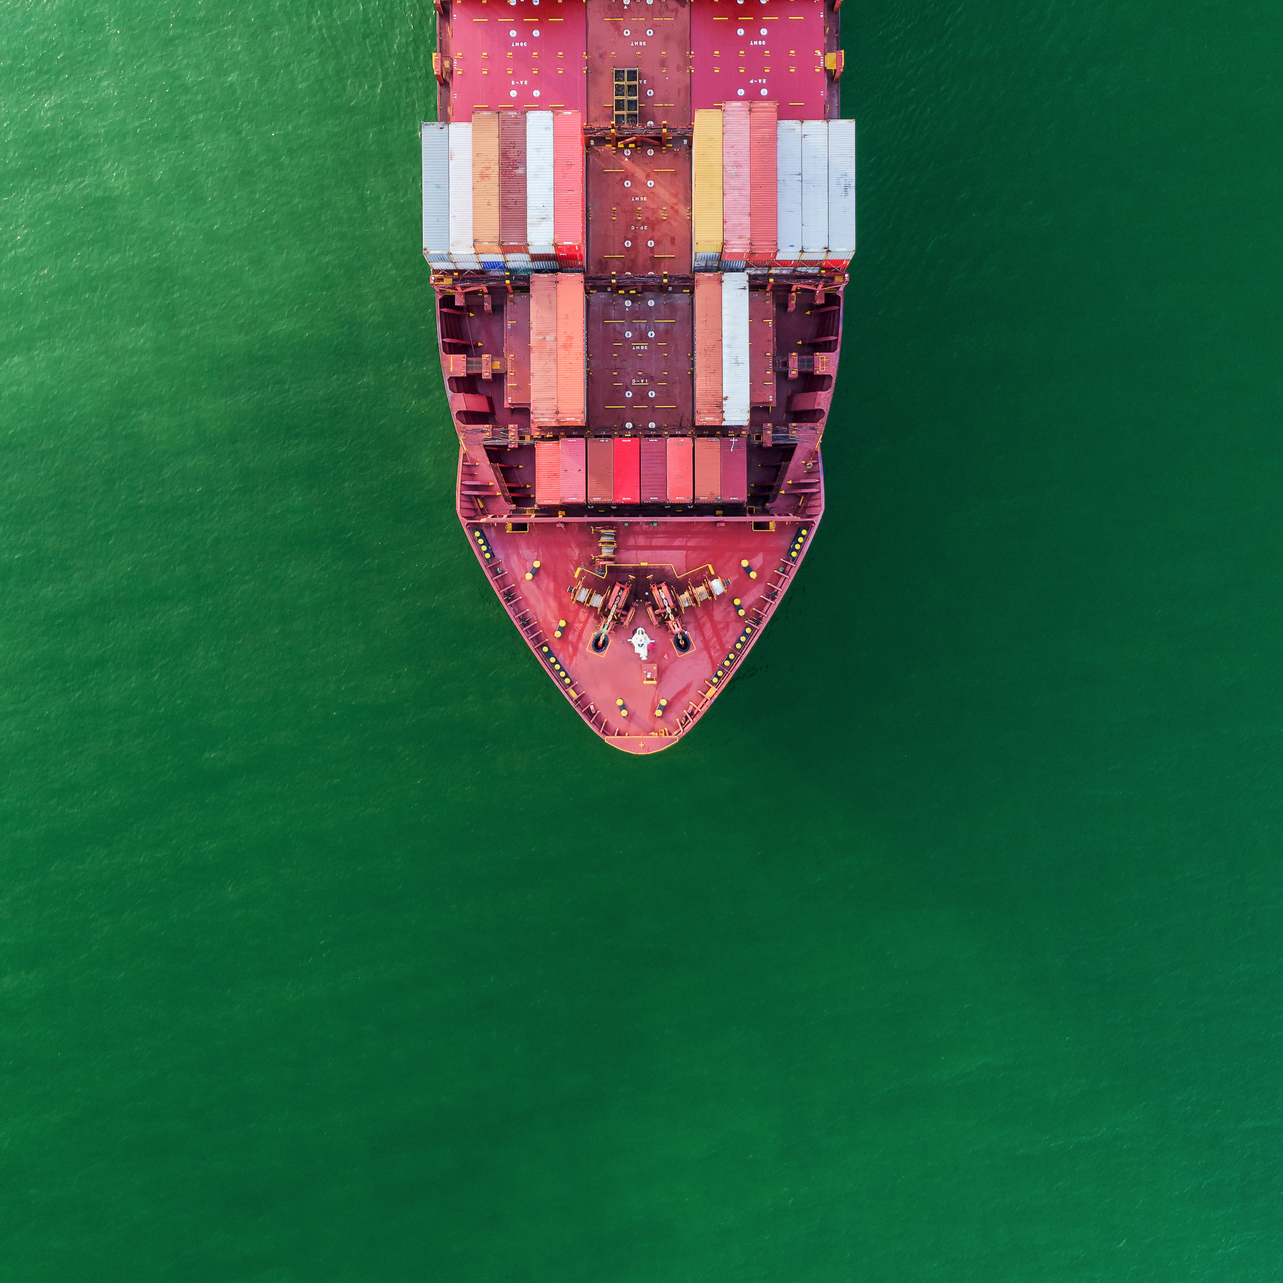 An aerial top-down view of a container ship on the sea going to quayside for load and unload